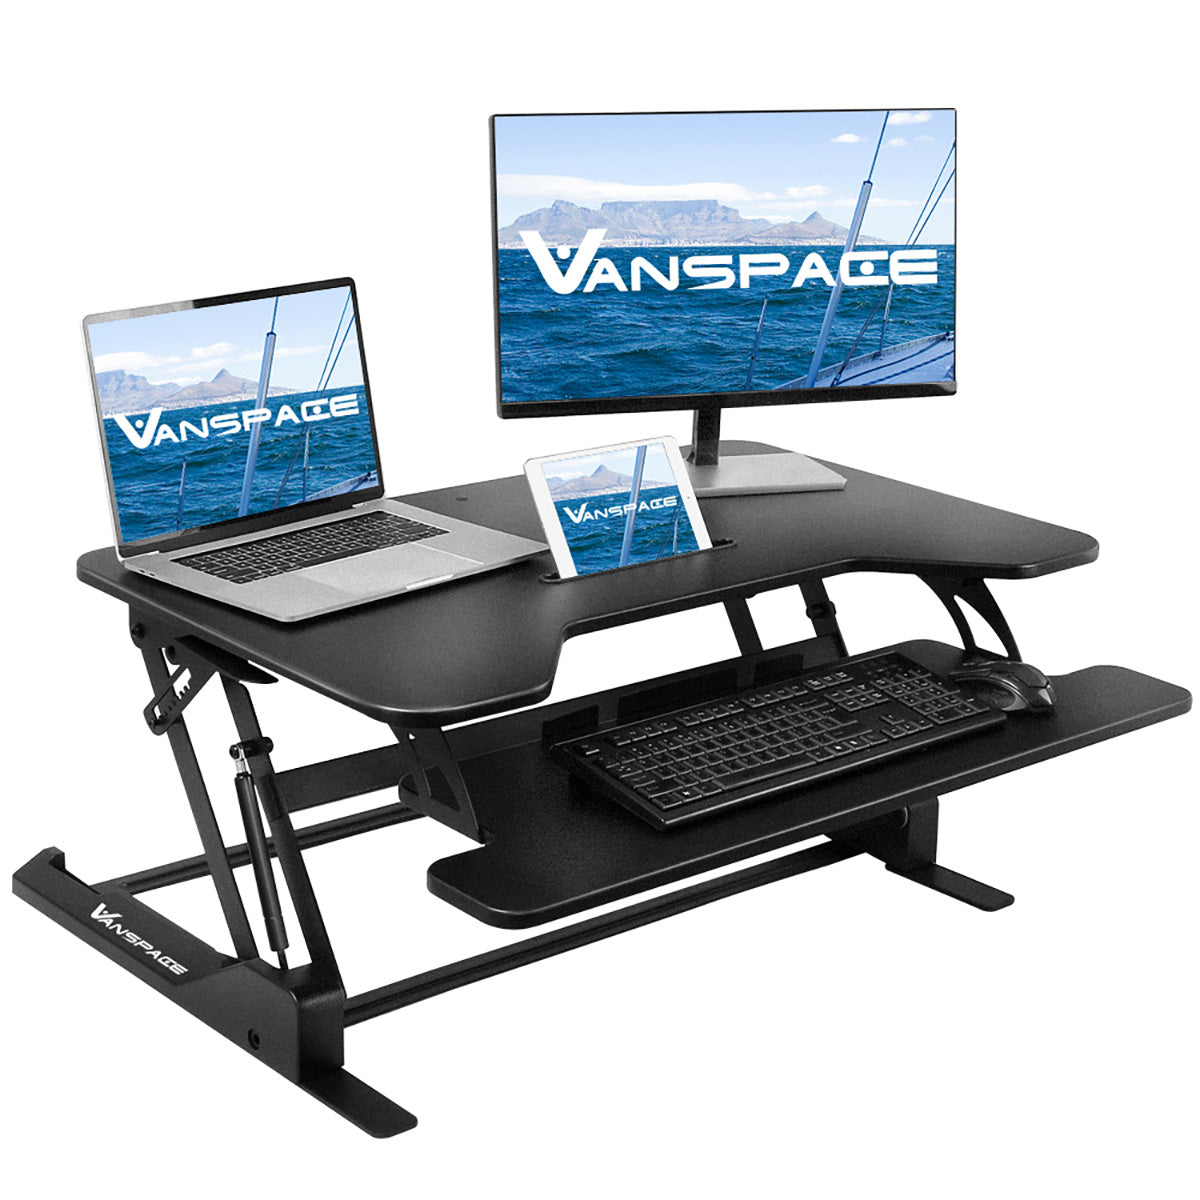 VANSPACE Height Adjustable Standing Desk Gas Spring Laptop Desk 36